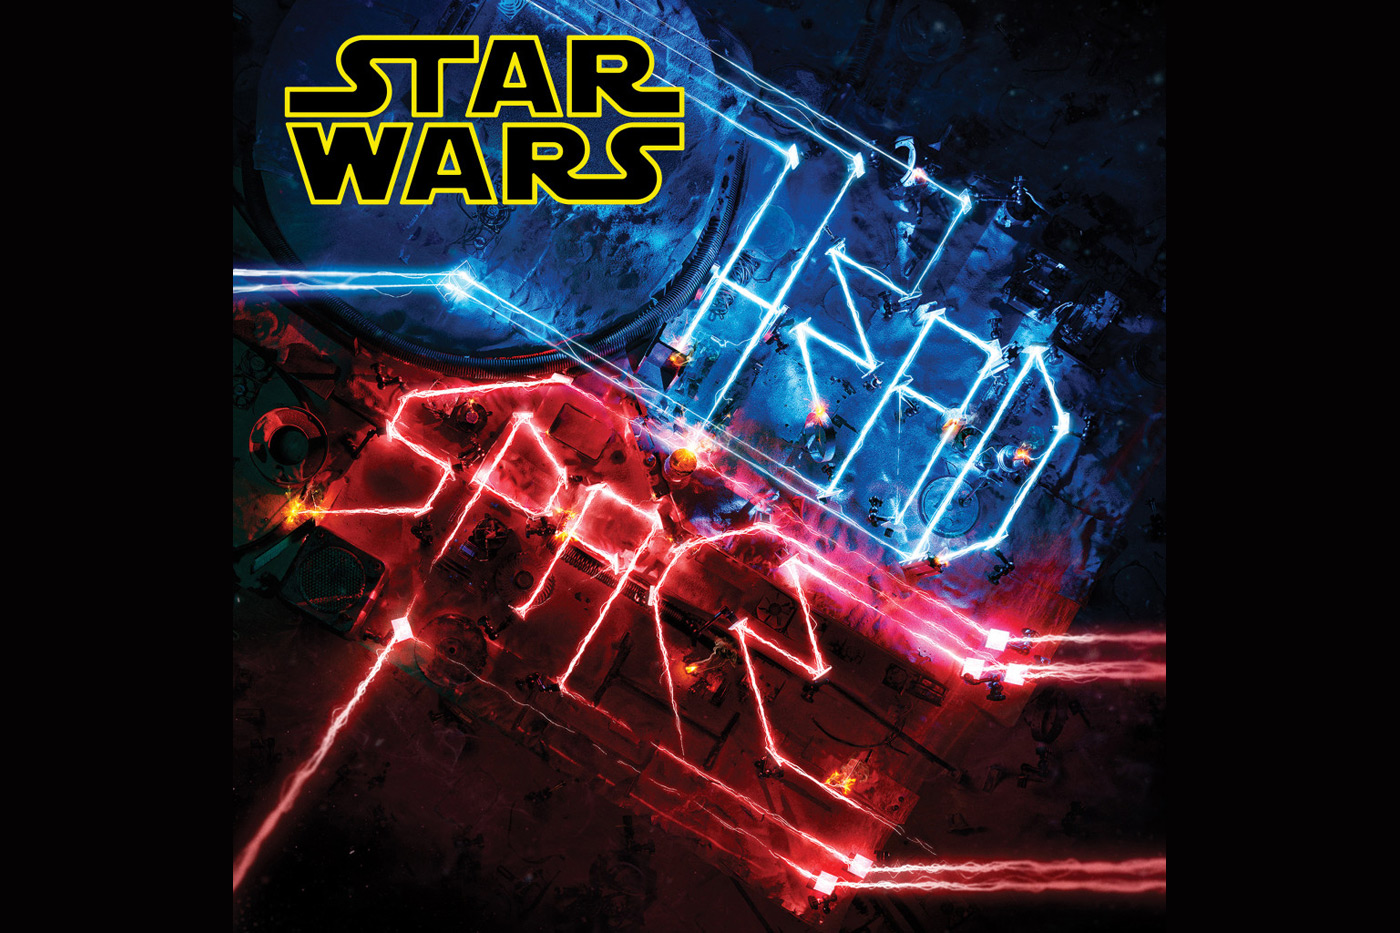 'Star Wars' is getting an official electronic music album